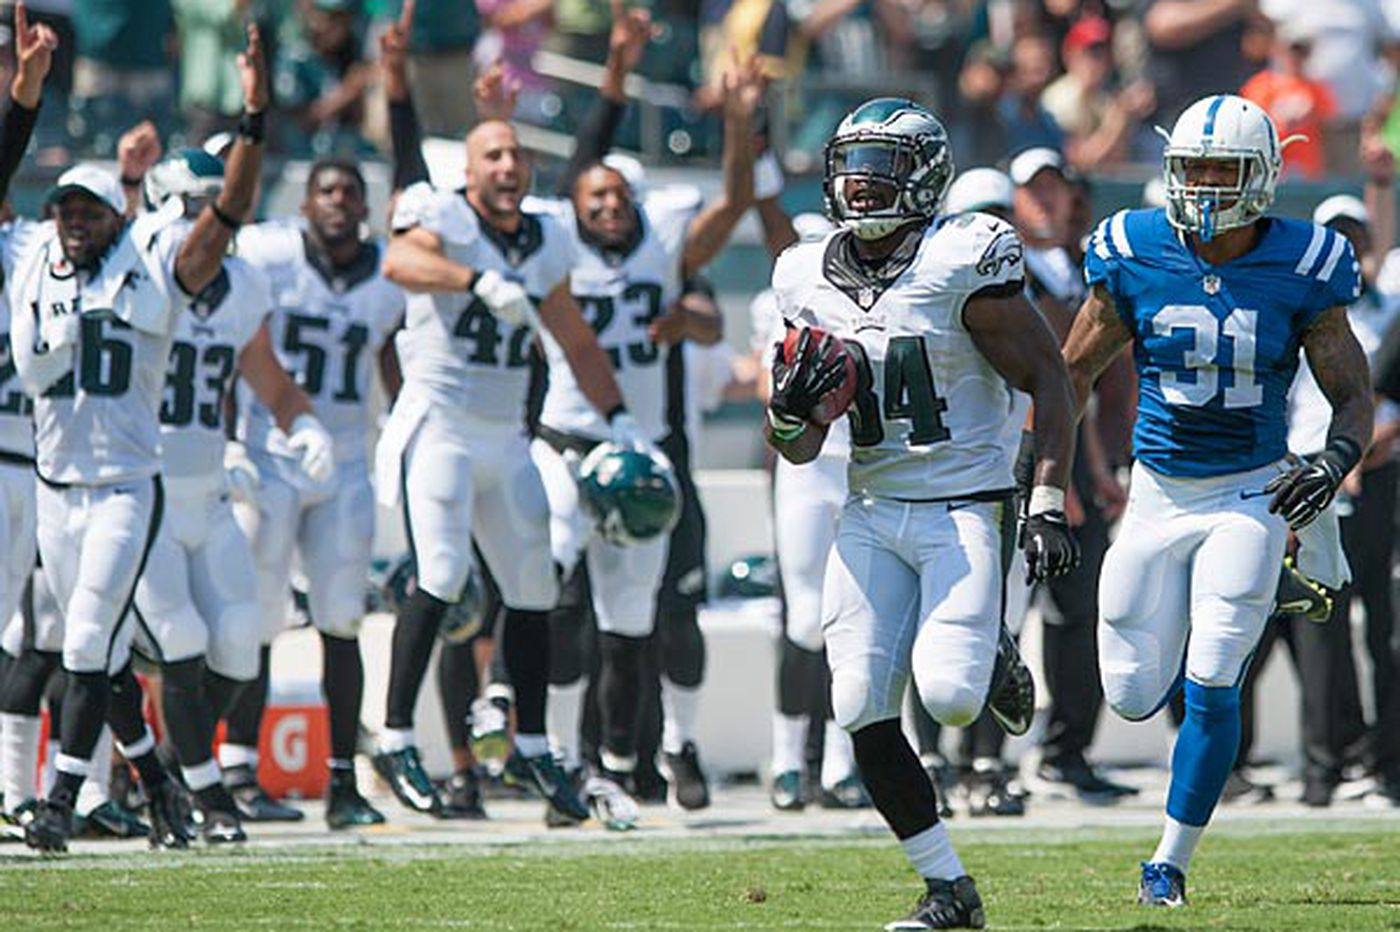 Eagles thump Colts in preseason debut; Tebow scores TD